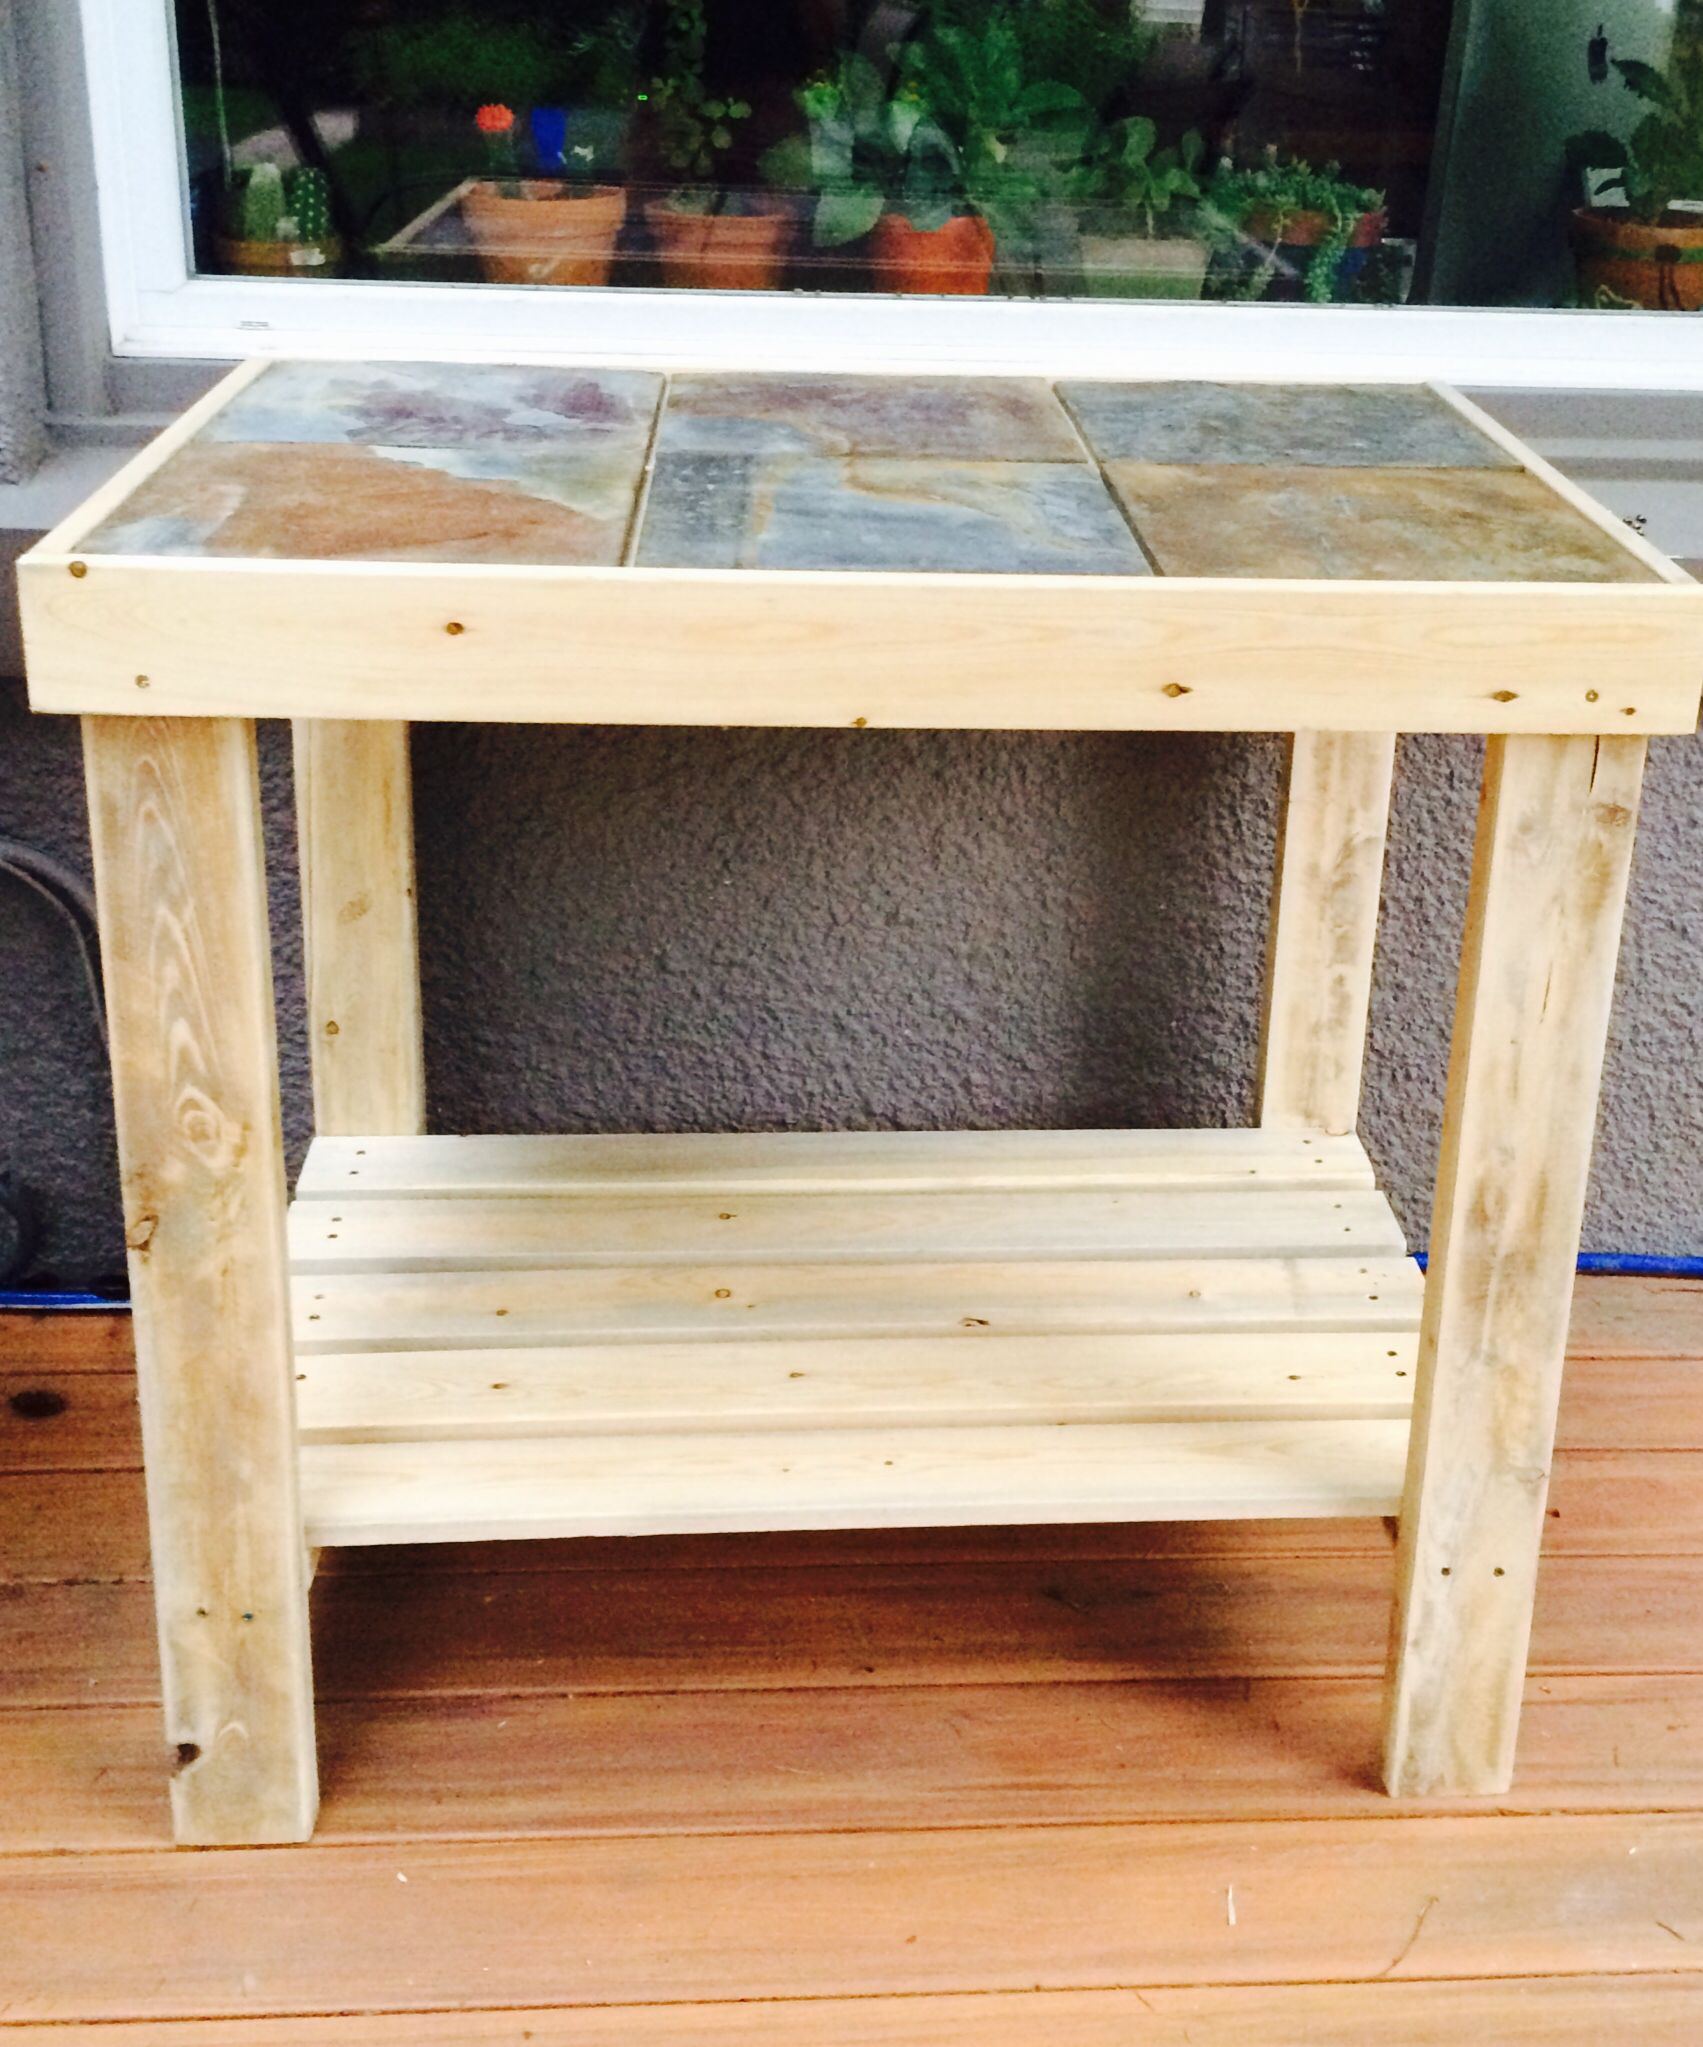 outdoor side table that adds extra counter space next bbq for constructed with and pine lumber easy project completes day beginner iron end tables glass tops thin bedside cabinets